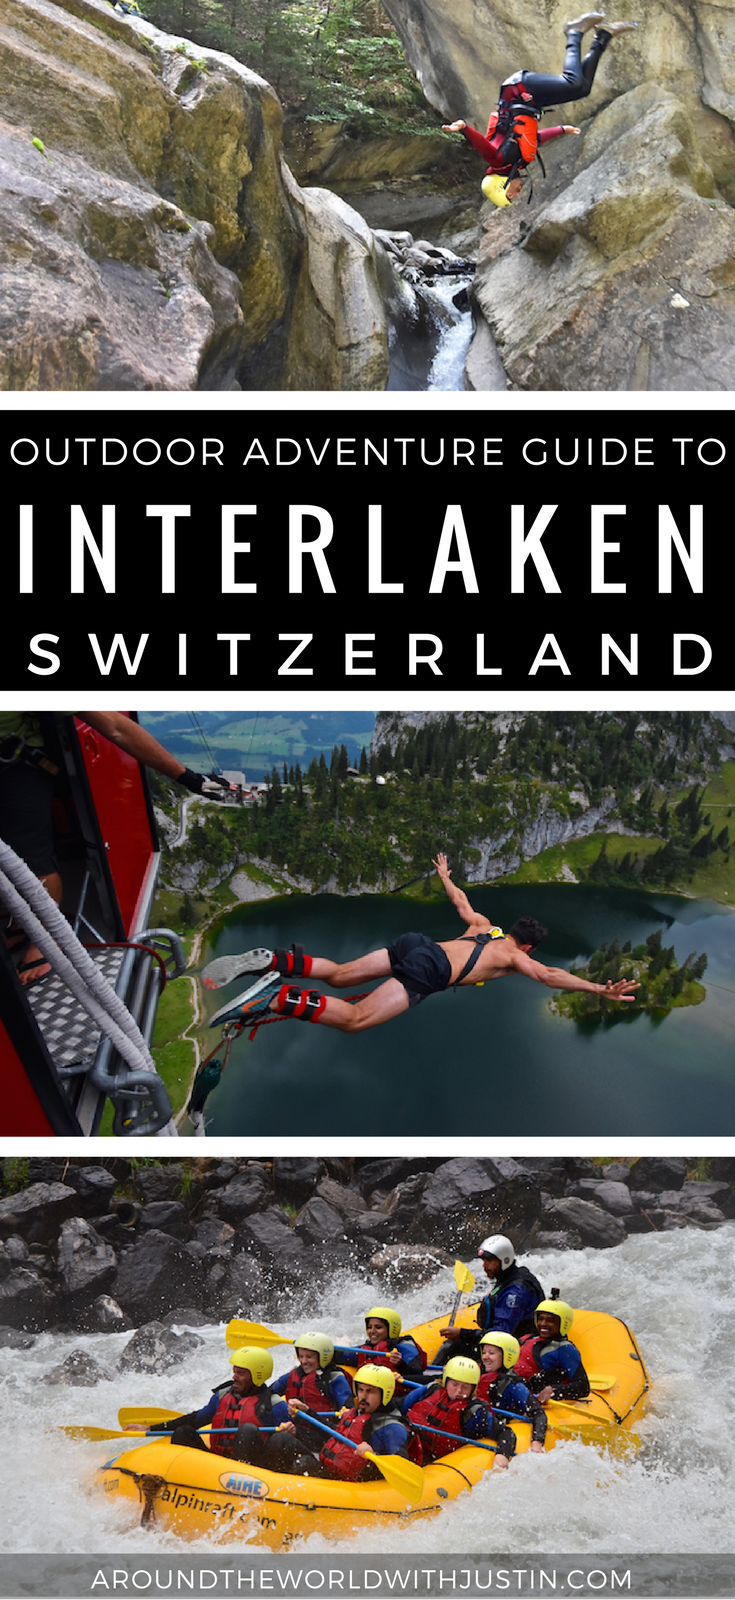 Things to do in Interlaken Switzerland outdoor adventures with Alpin Raft bungee jumping canyoning river rafting